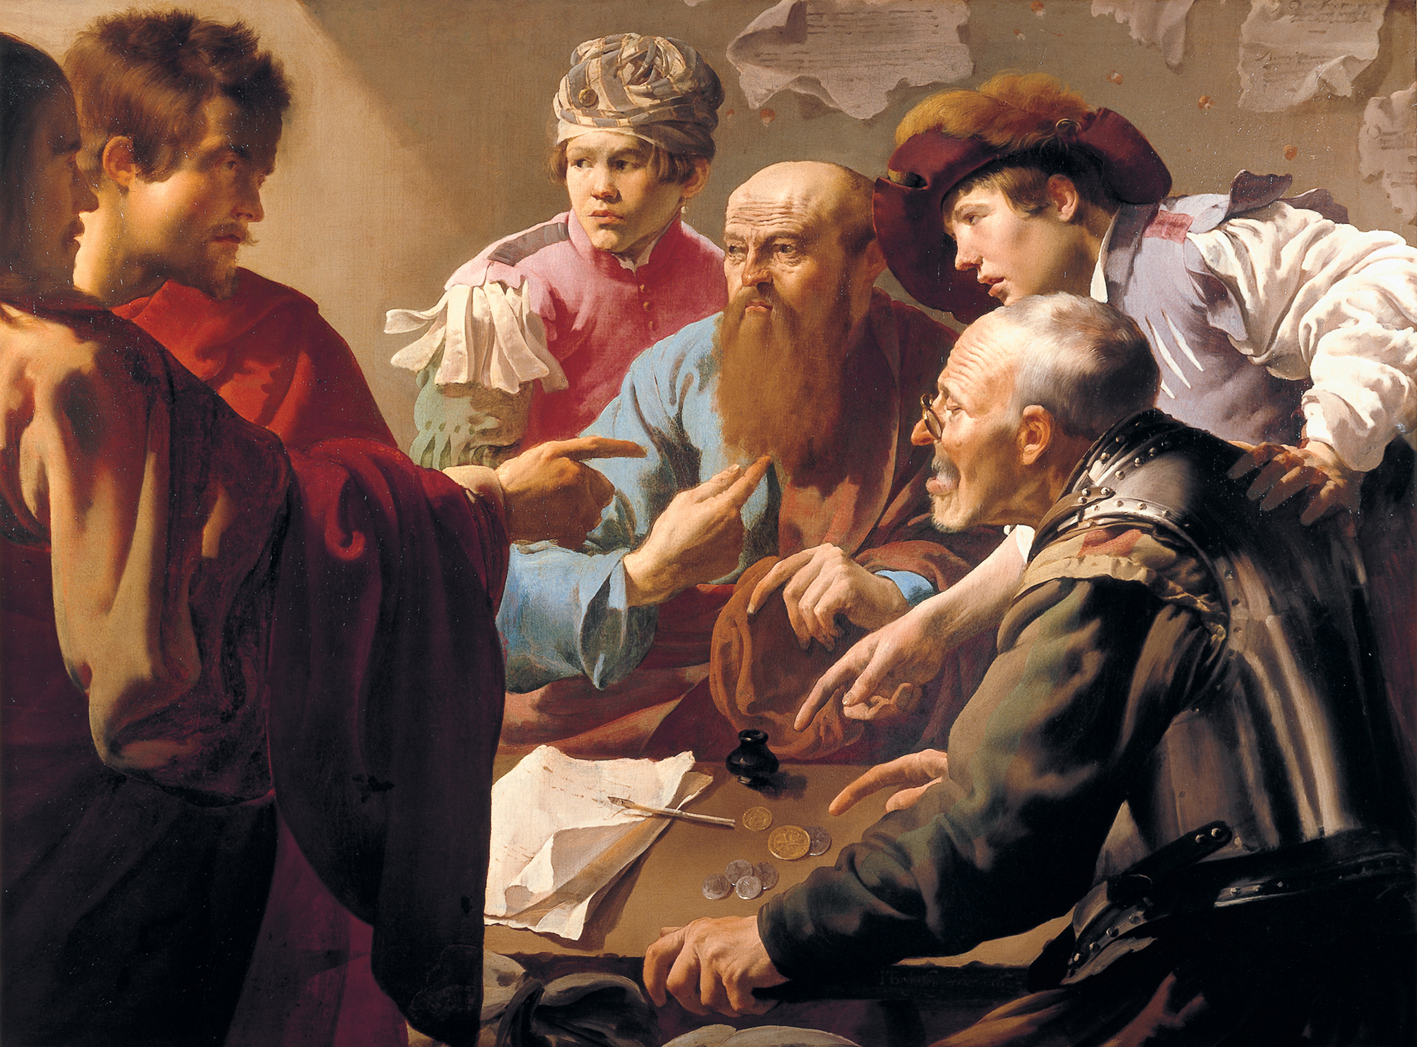 The Calling of St. Matthew by Hendrick ter Bruggen